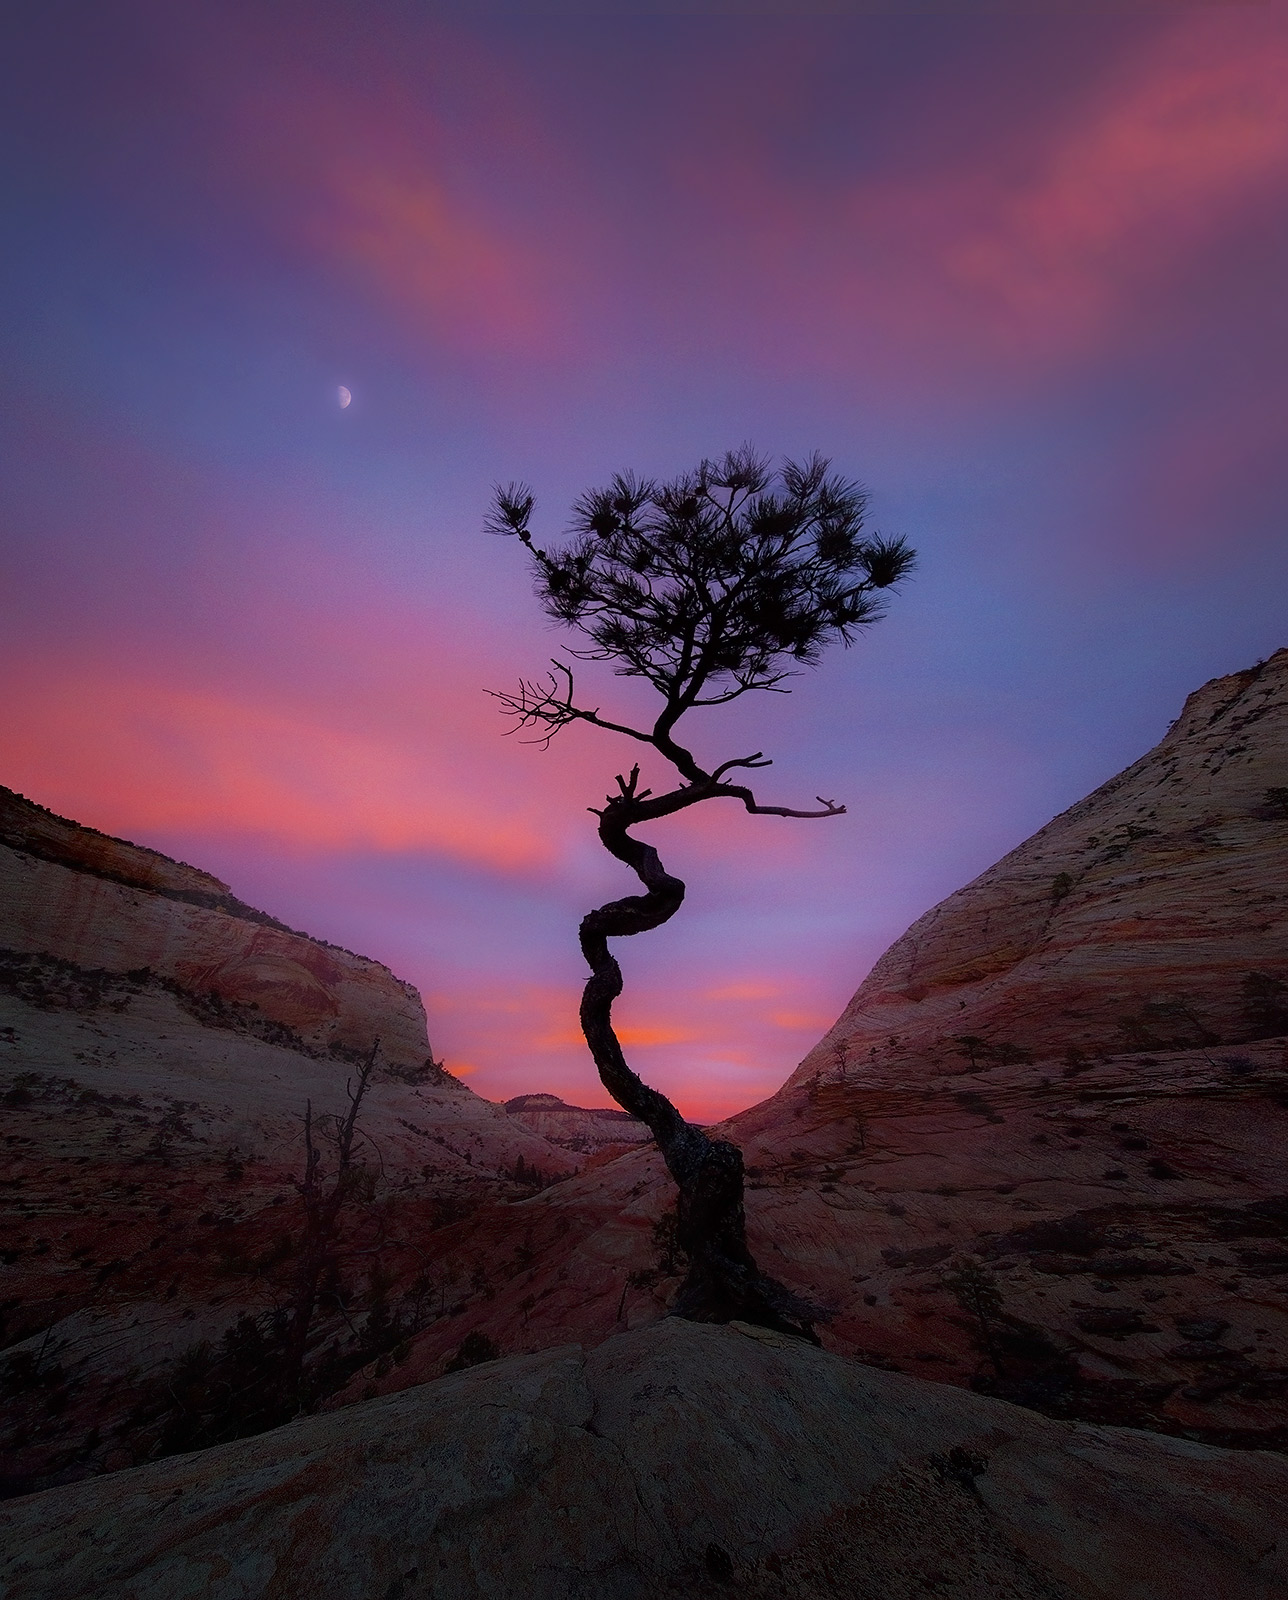 Utah, Lone tree, sandstone, colorado plateau, gnarled, moonrise, twilight, photo